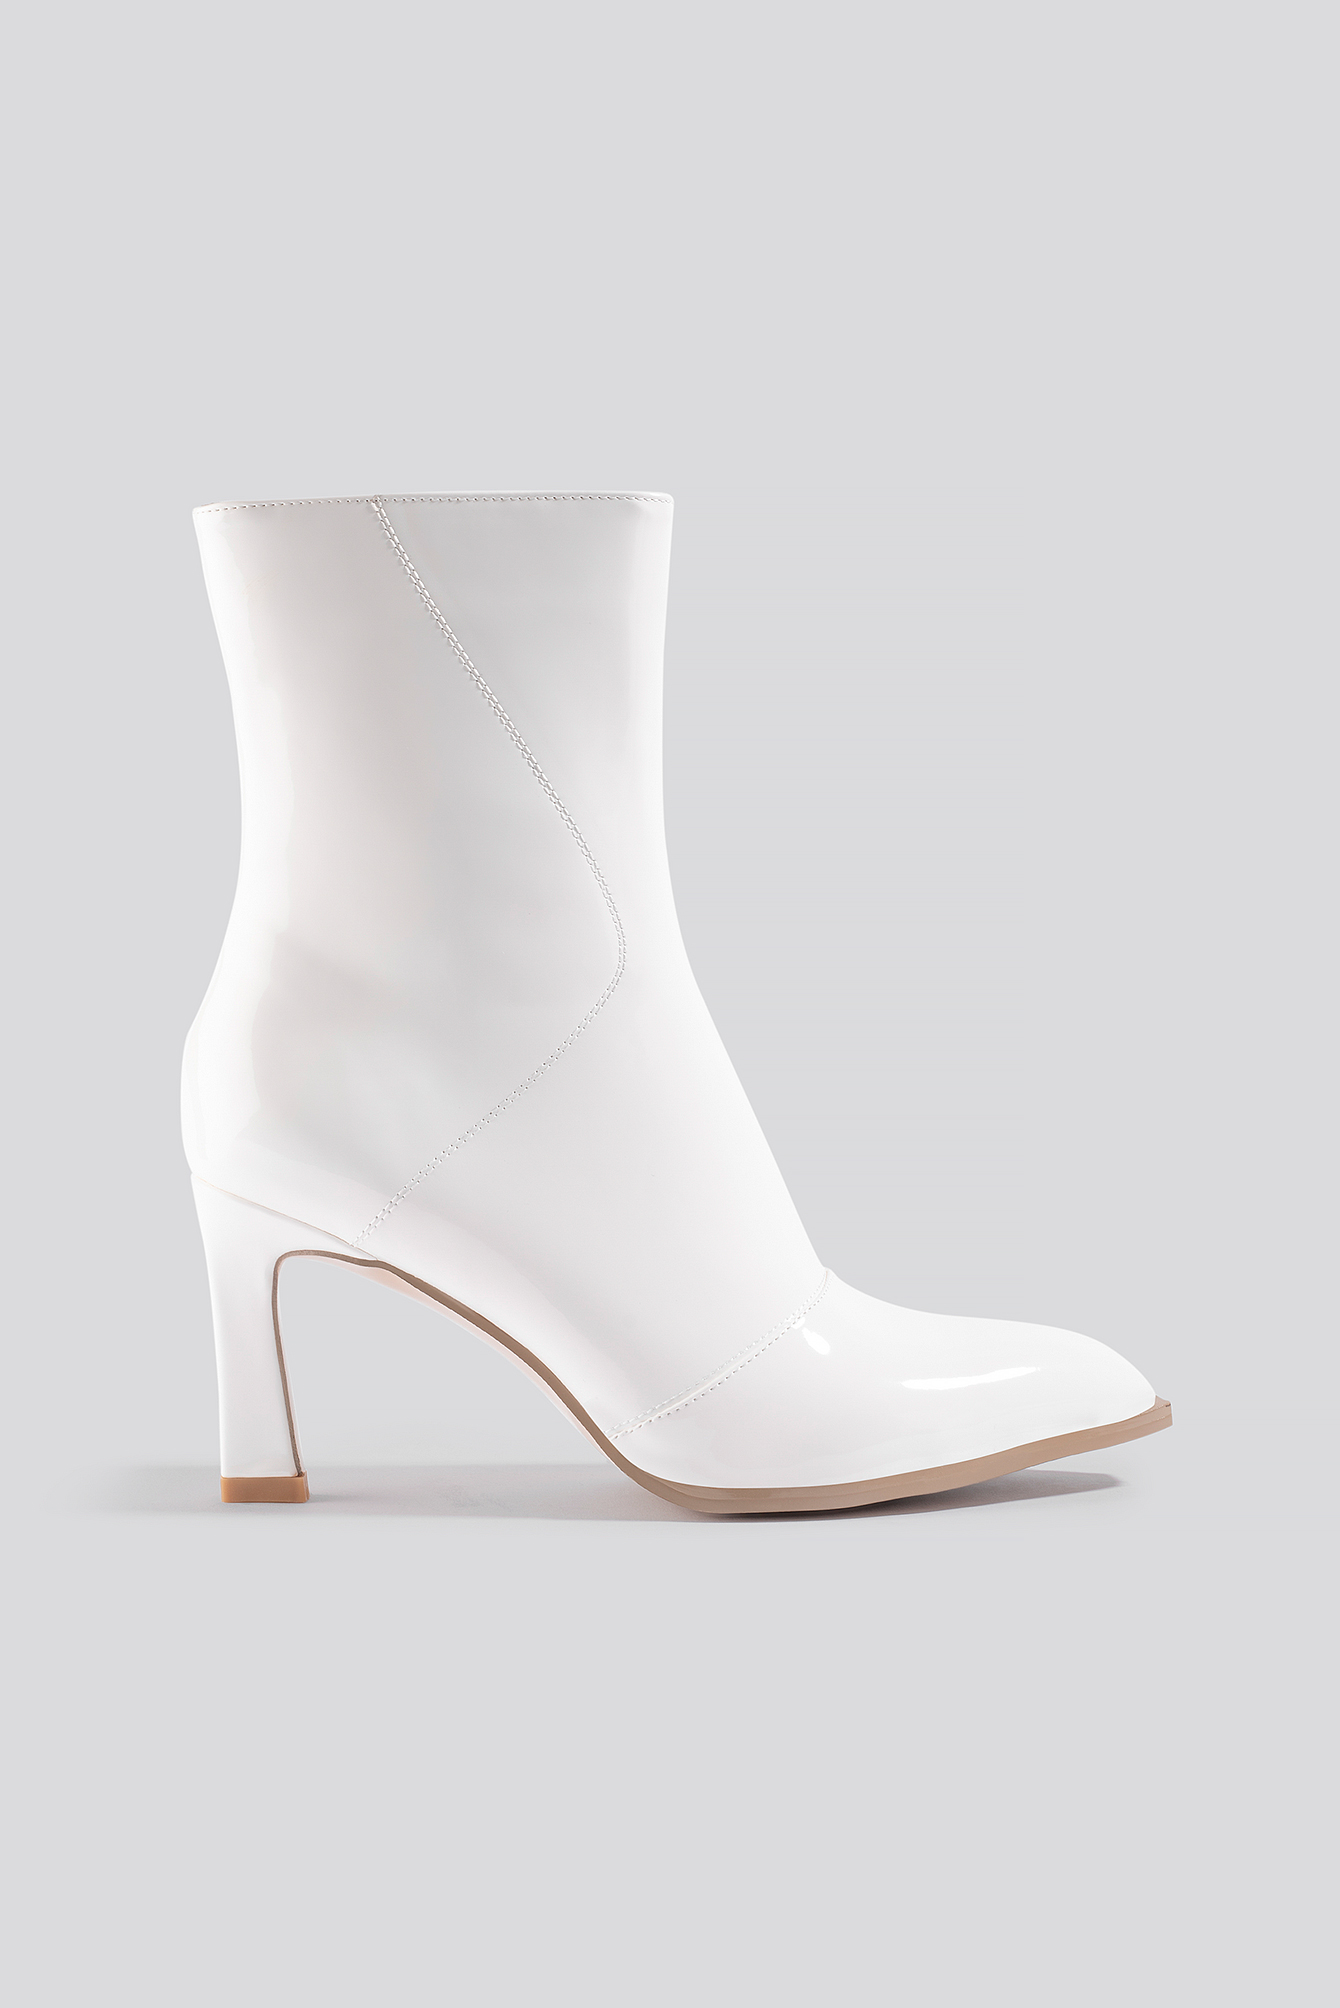 na-kd shoes -  Glossy Patent Low Boots - White